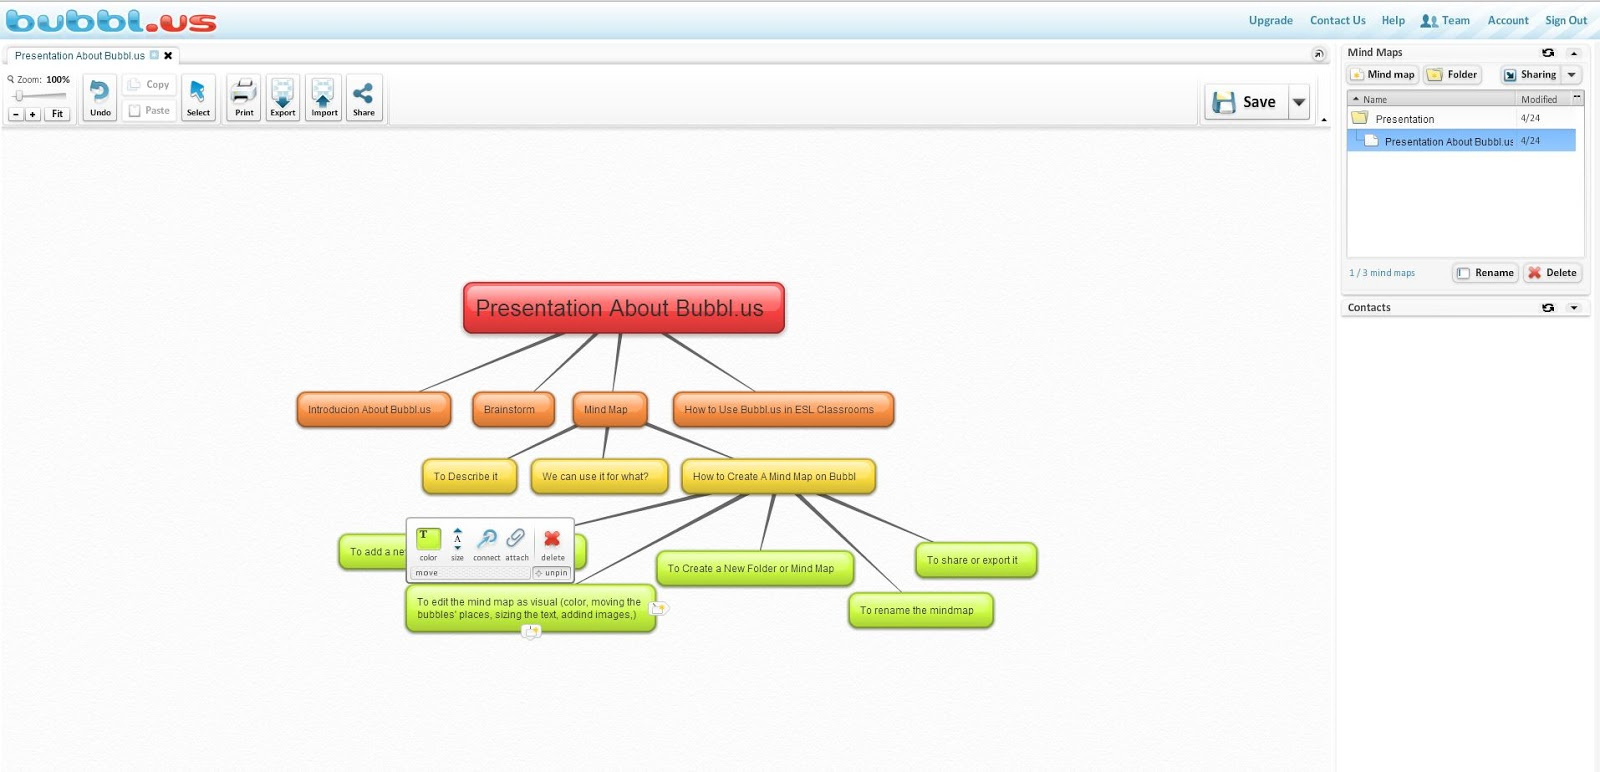 speak english so that the world will be a new world bubbl us concept map - Bubblus Mind Map